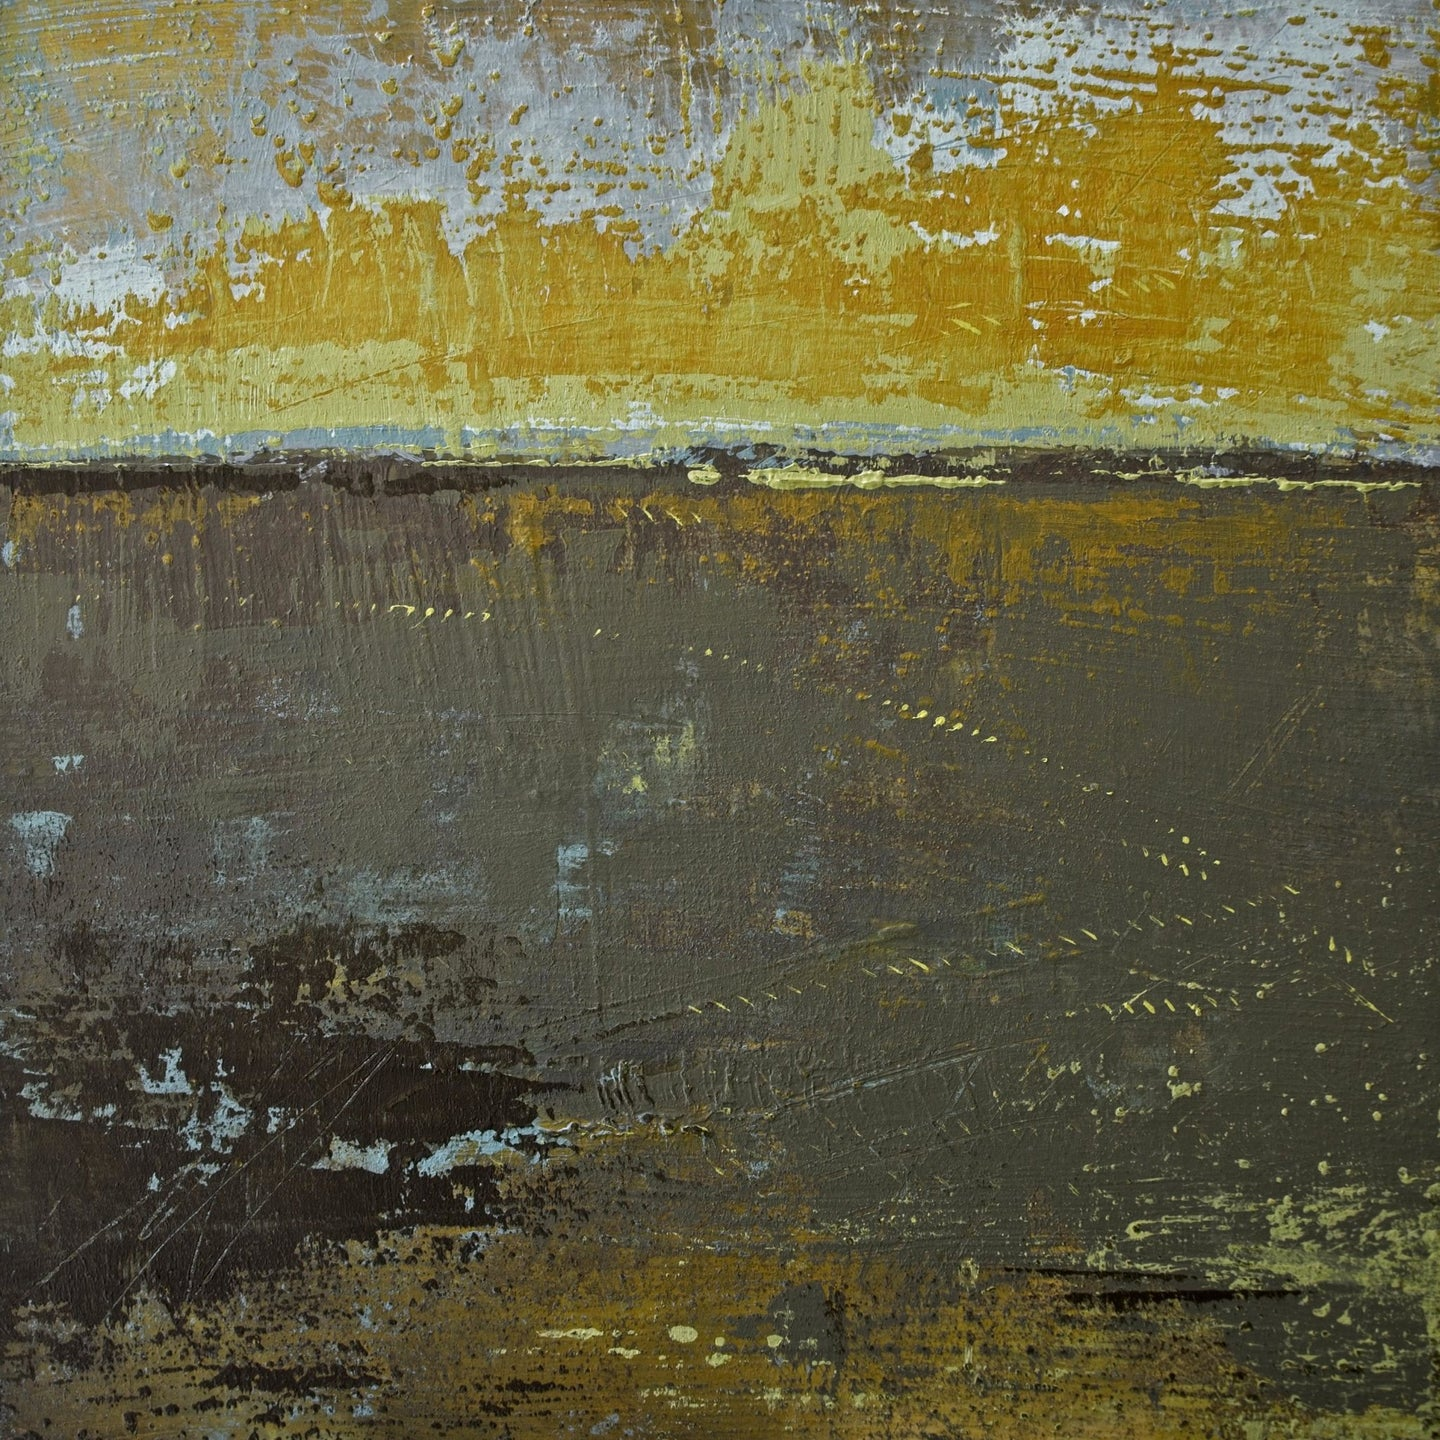 Gold and brown abstract landscape art